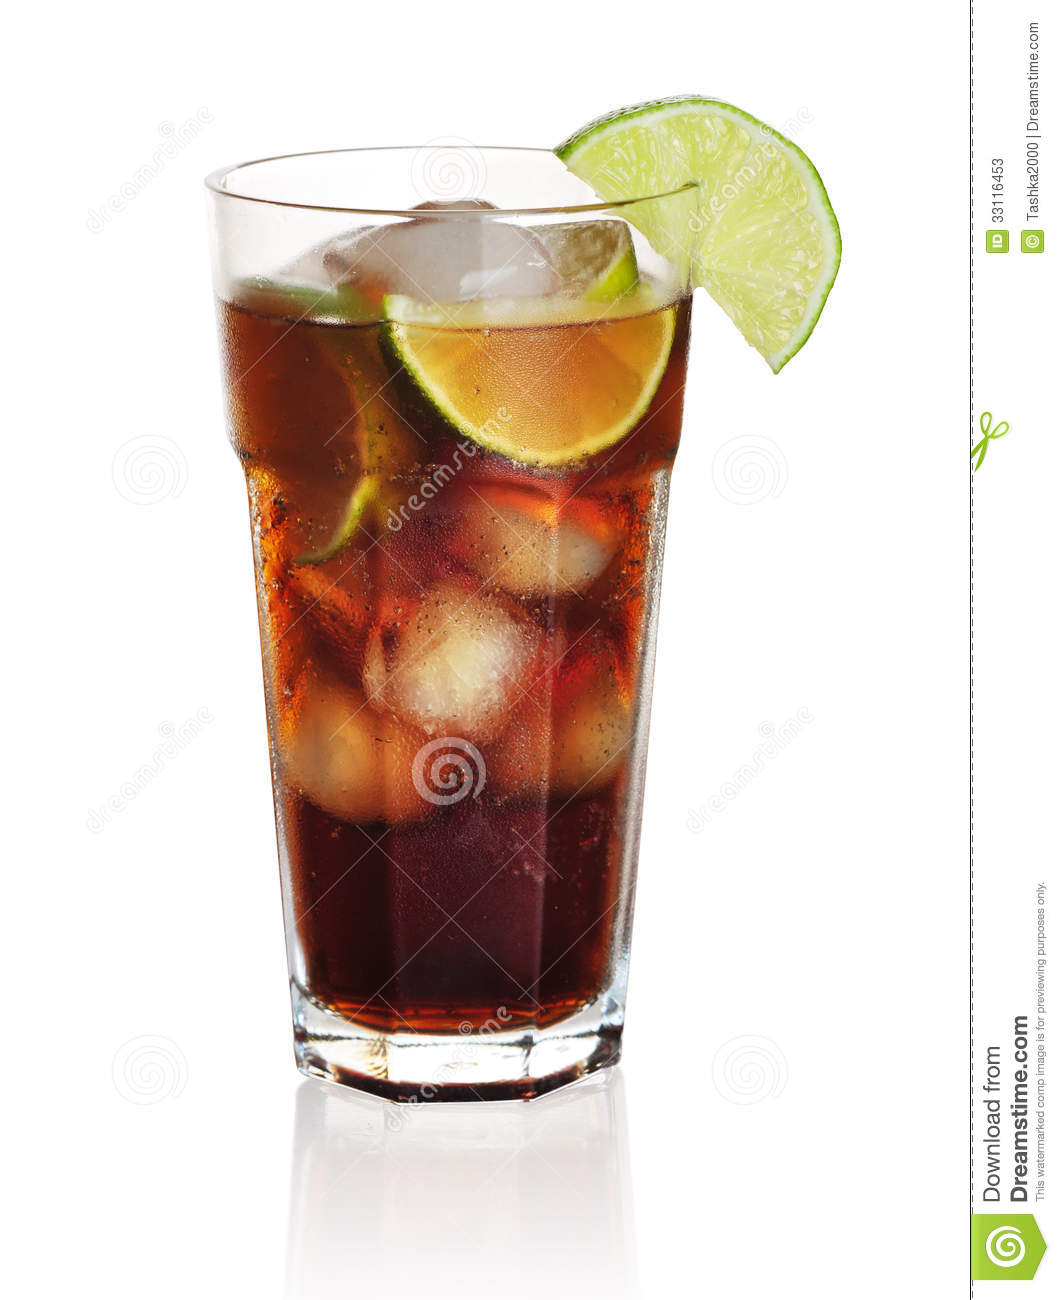 Cuba libre cocktail isolation on a white background.